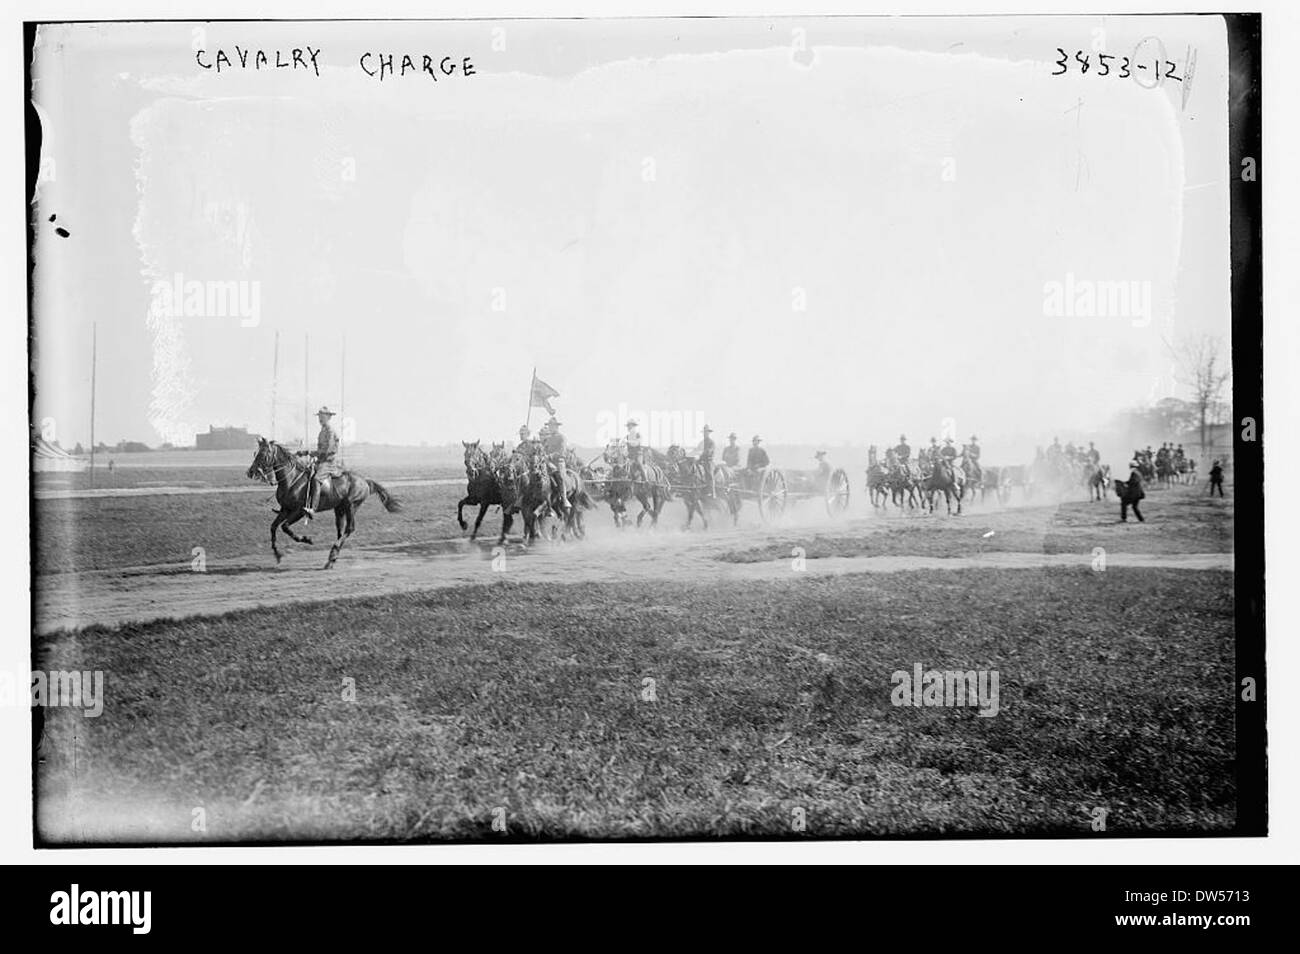 Cavalry Charge (LOC) - Stock Image